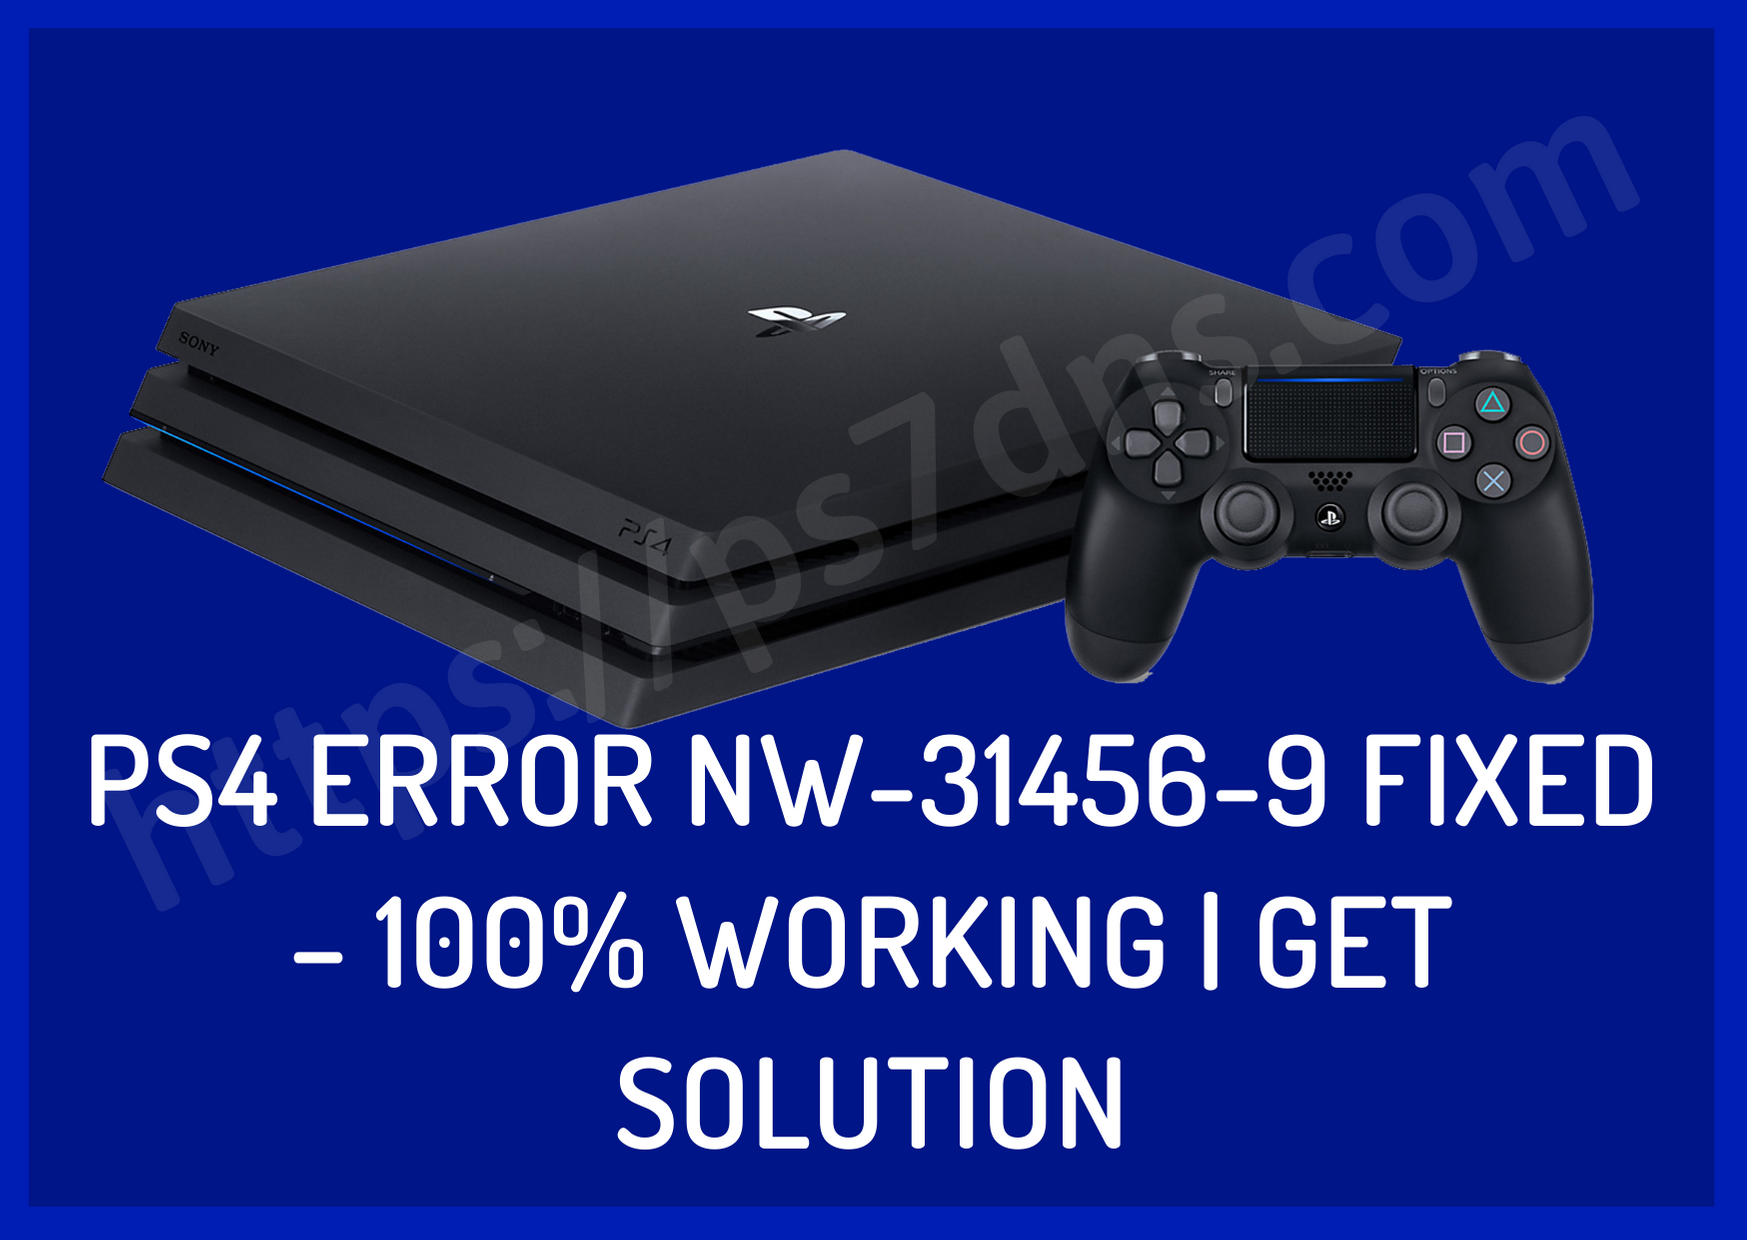 PS4 Error NW-31456-9 Fixed – 100% Working Get Solution